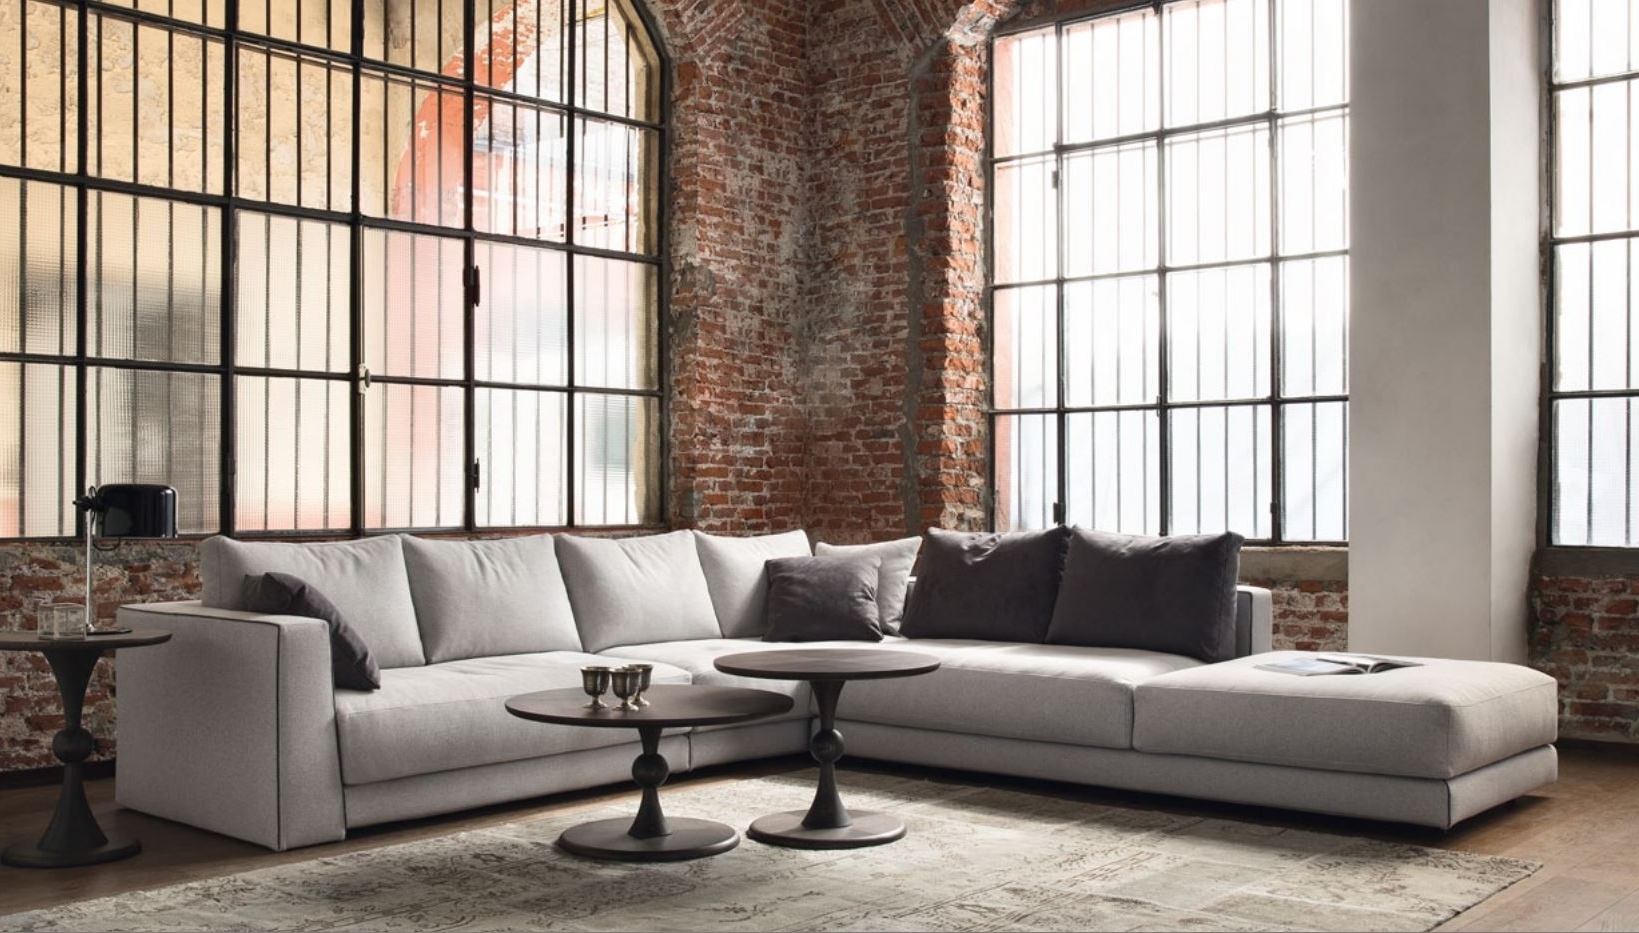 Most Popular Italian Sofas At Momentoitalia – Modern Sofas,designer Sofas With Long Modern Sofas (View 11 of 15)